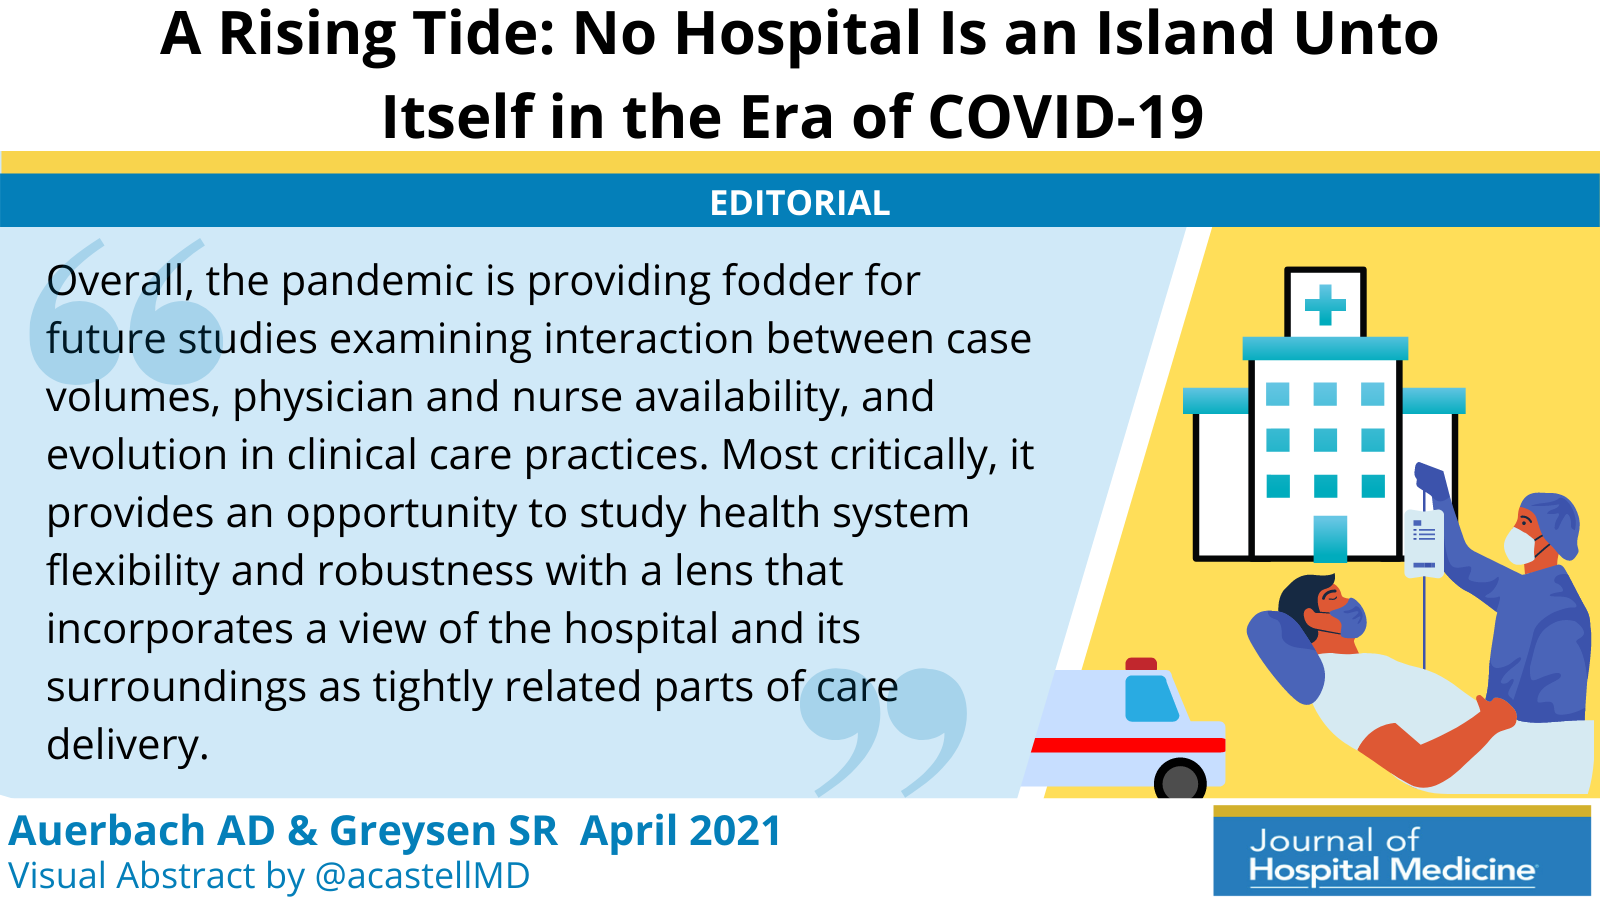 A Rising Tide: No Hospital Is an Island Unto Itself in the Era of COVID-19